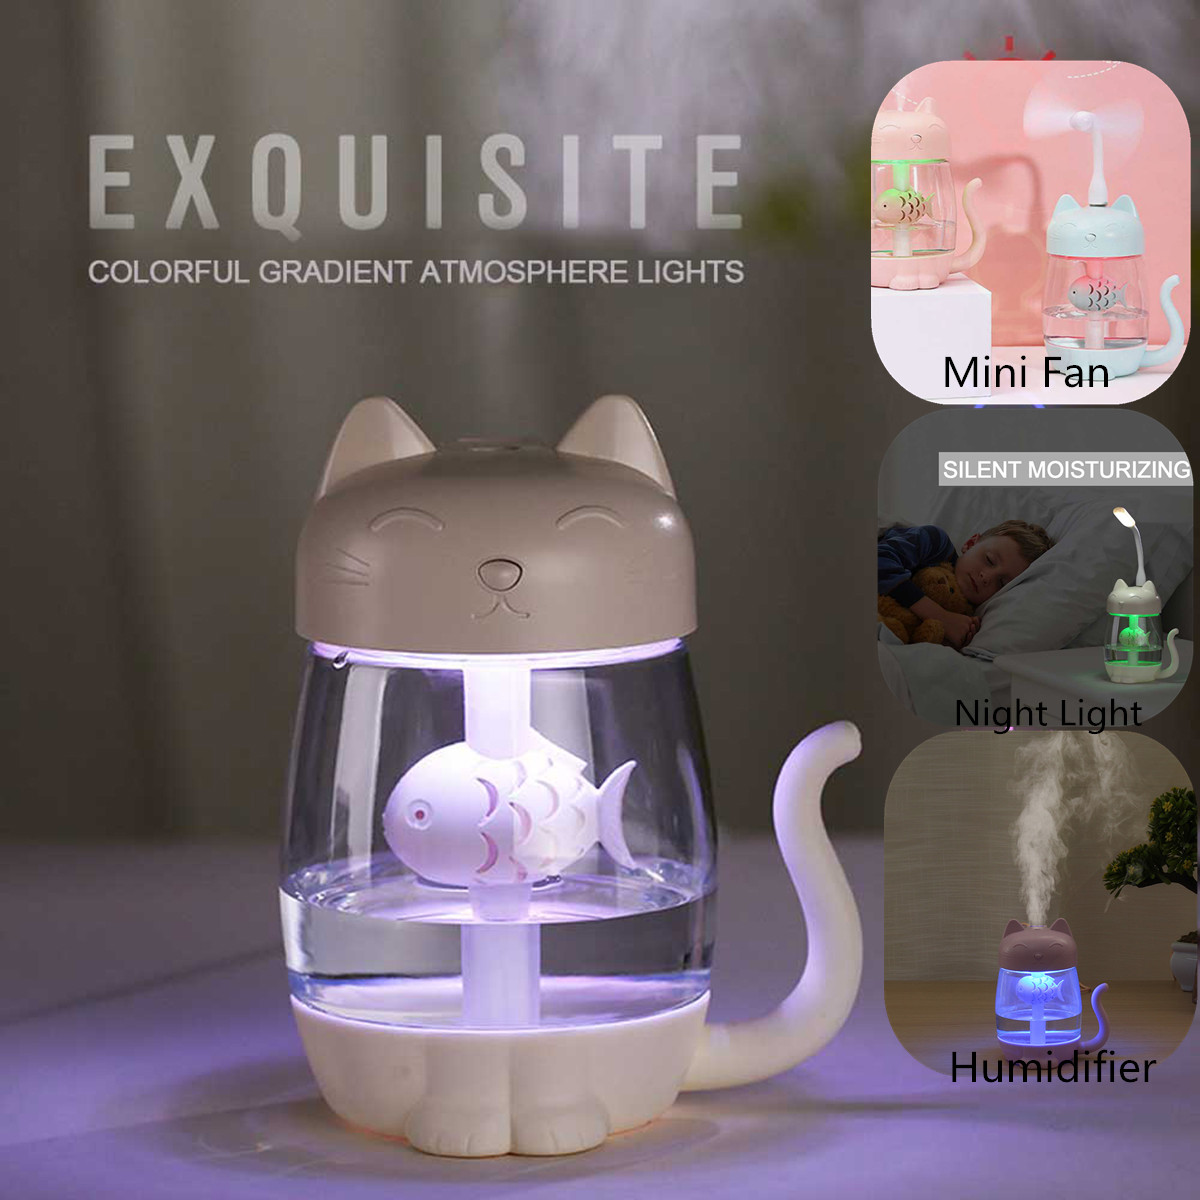 3 In 1 Ultrasonic Humidifier Essential Oil Diffuser Ultrasonic Air Humidifier 350ml Cat Cool Mist Mini Fan LED Night Light